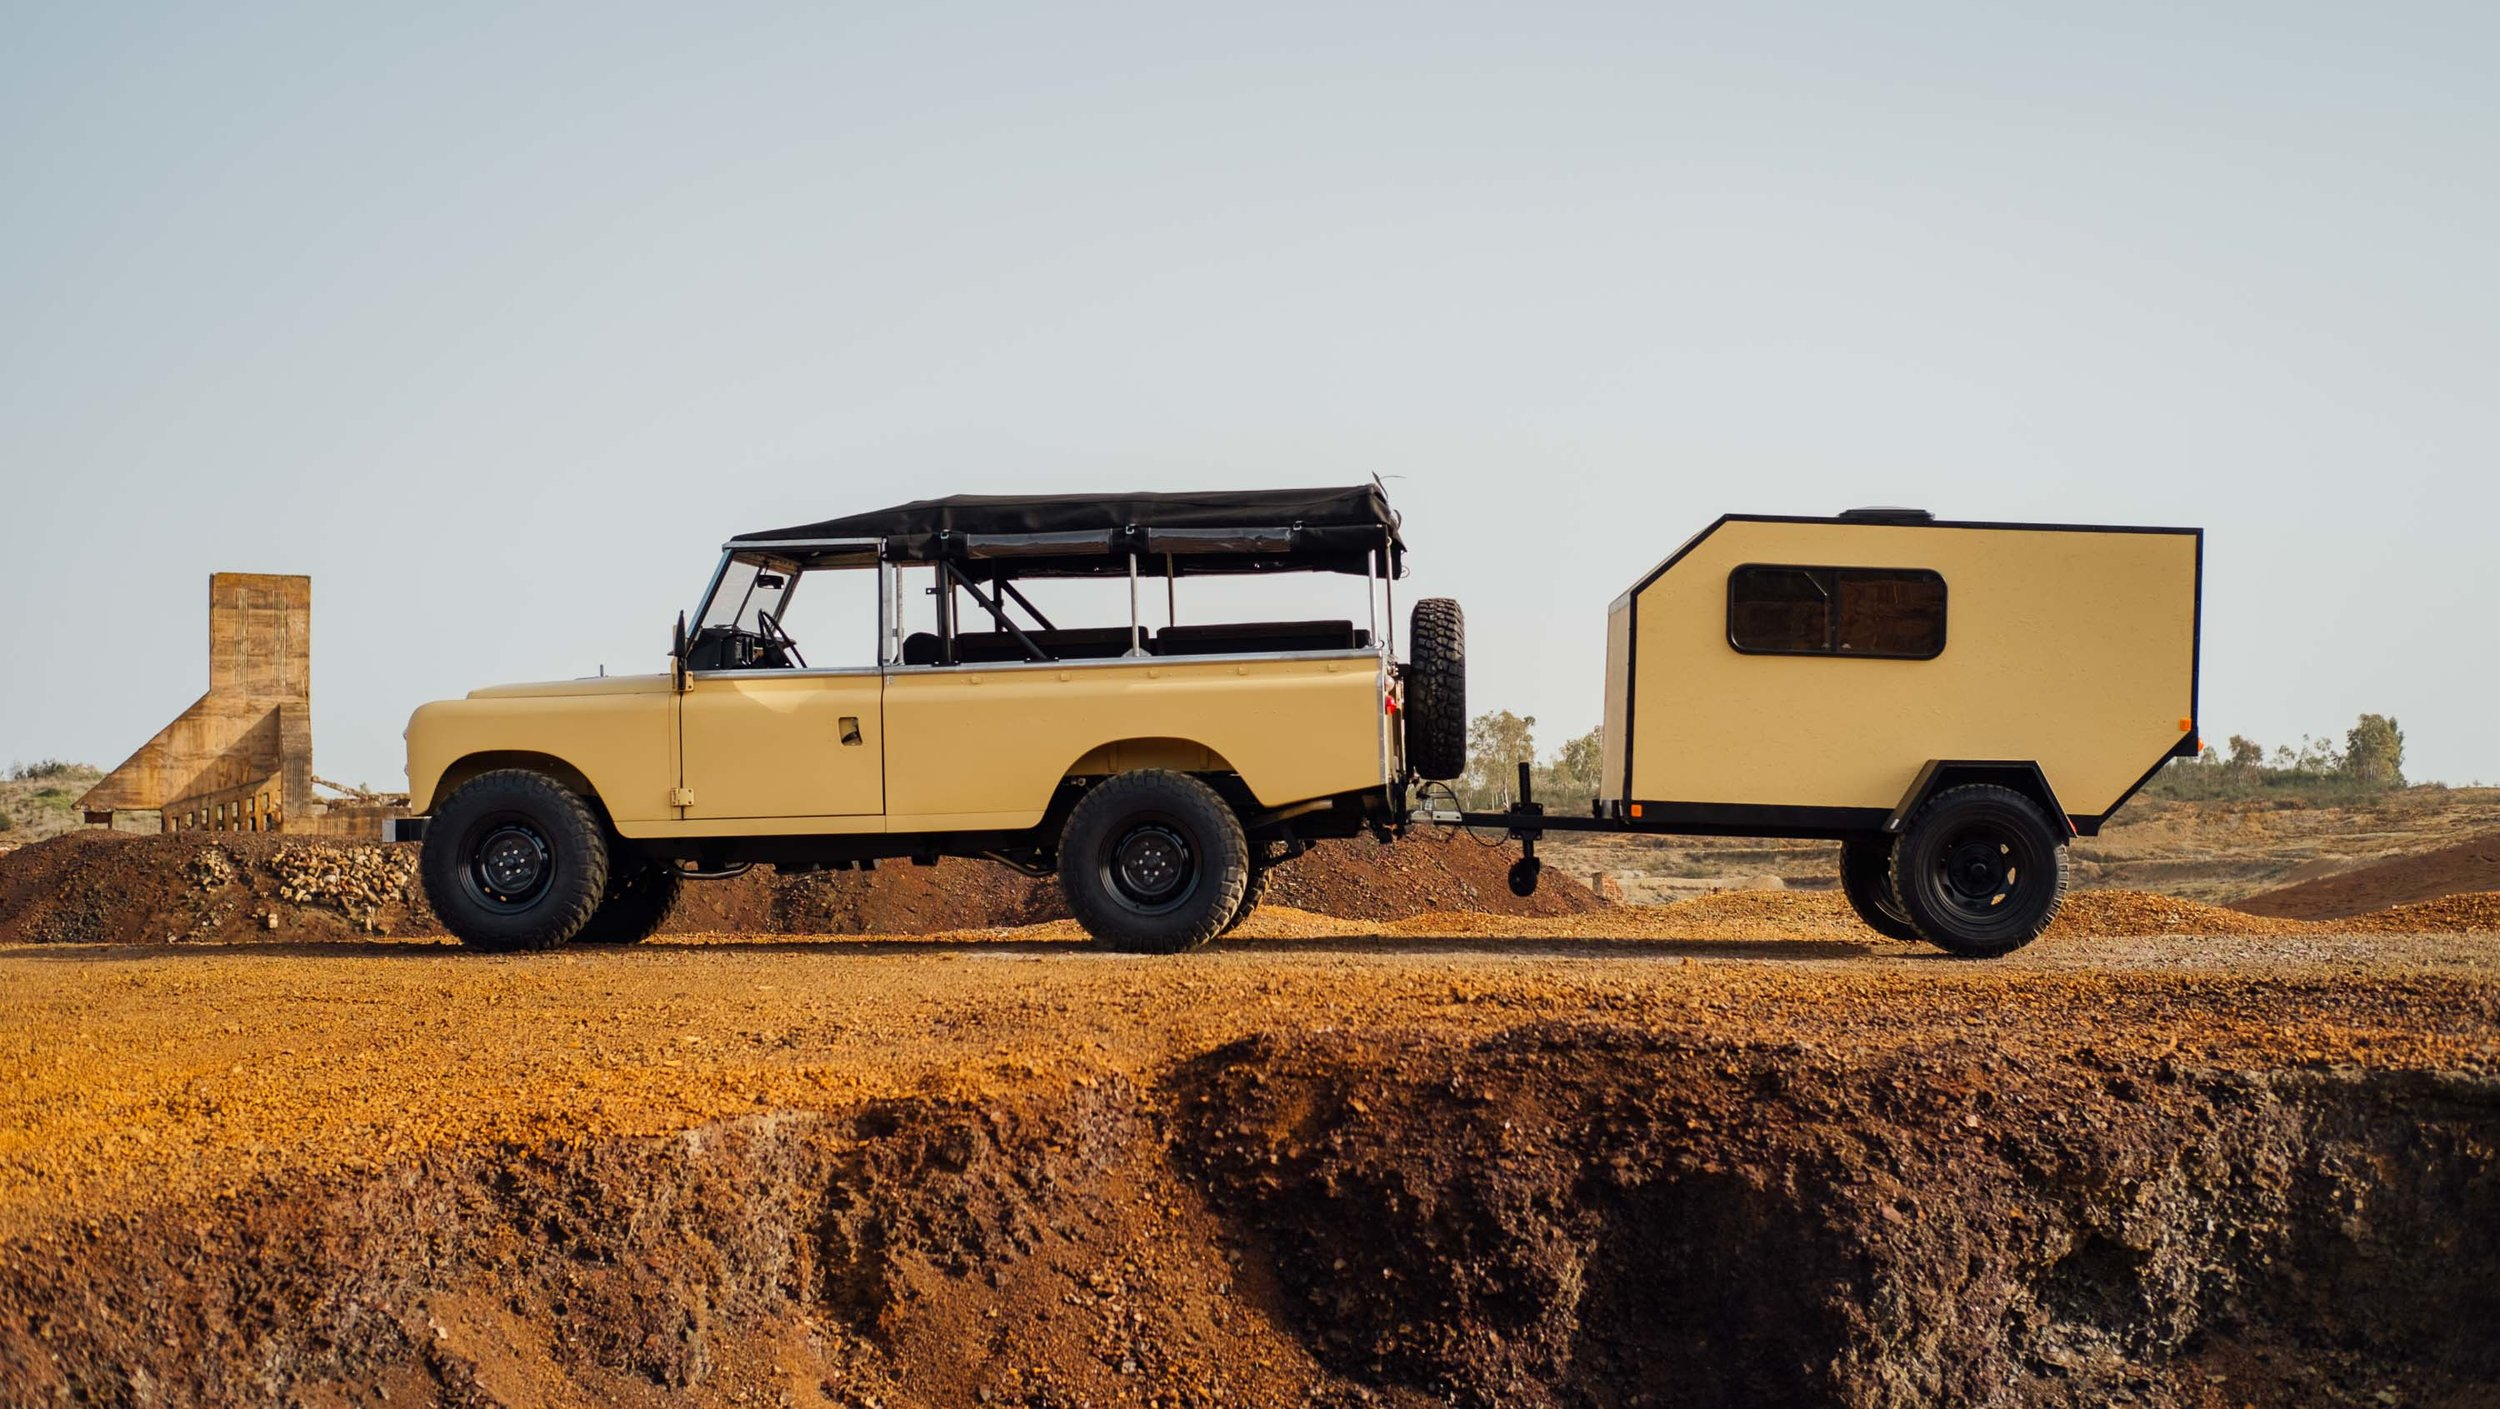 coolnvintage Land Rover S3 (167 of 207).jpg